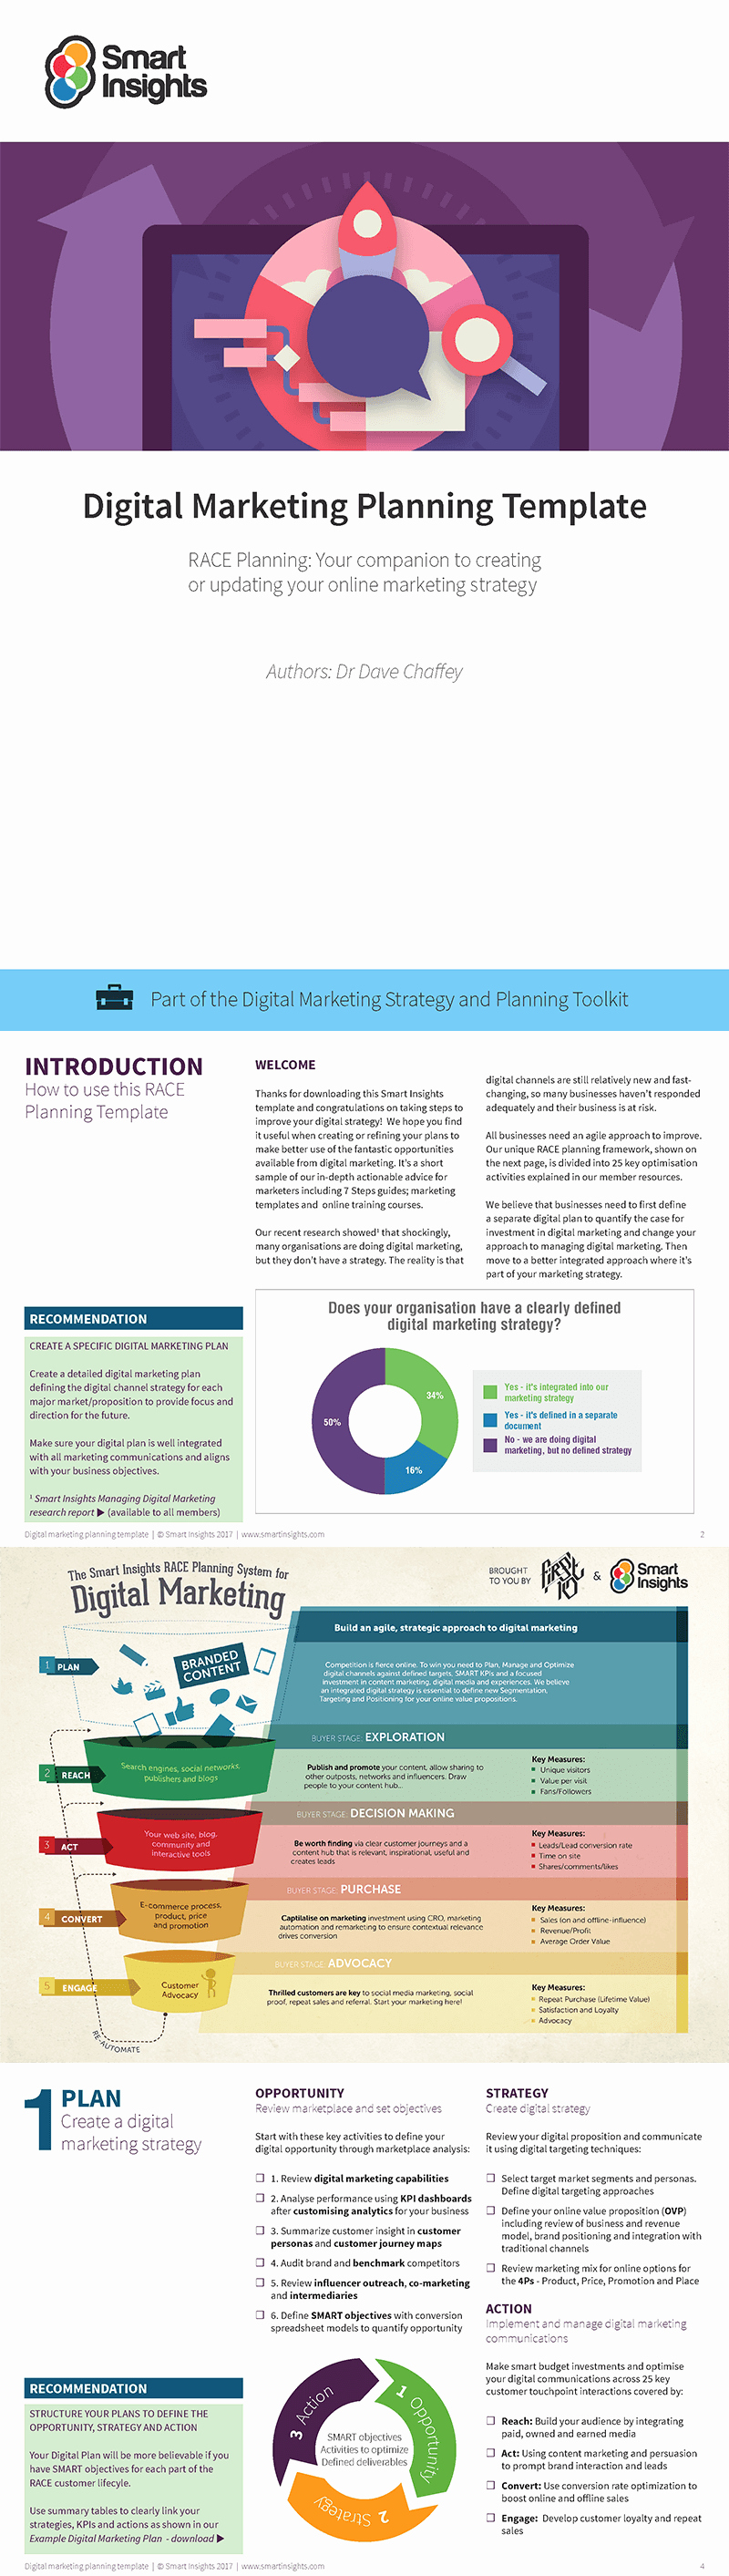 Digital Marketing Strategy Template Awesome Free Digital Marketing Plan Template Smart Insights